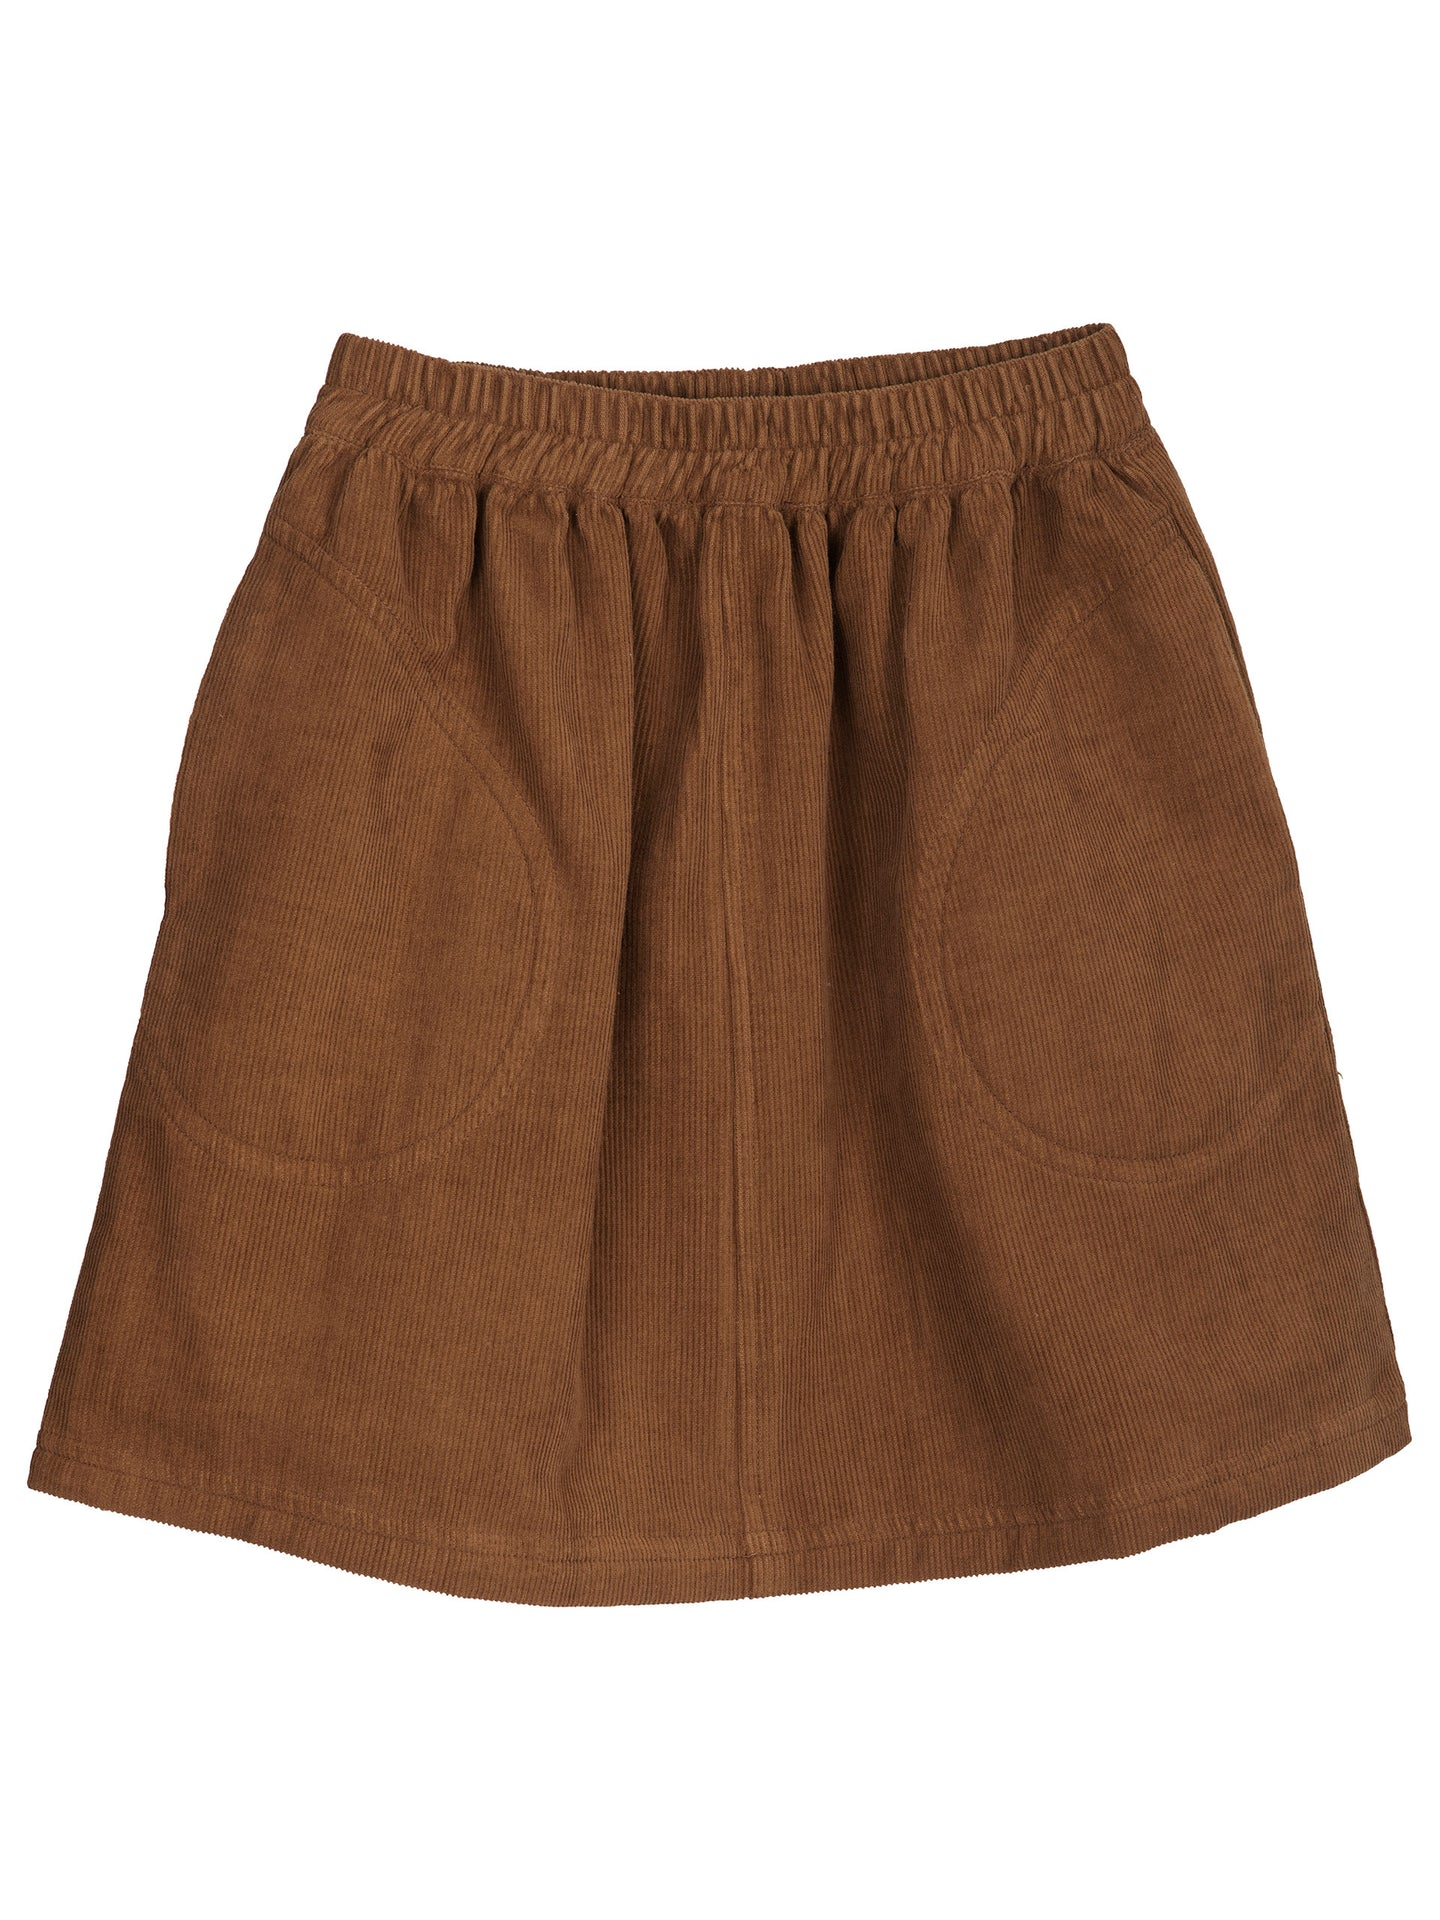 POCKET SKIRT CORDUROY